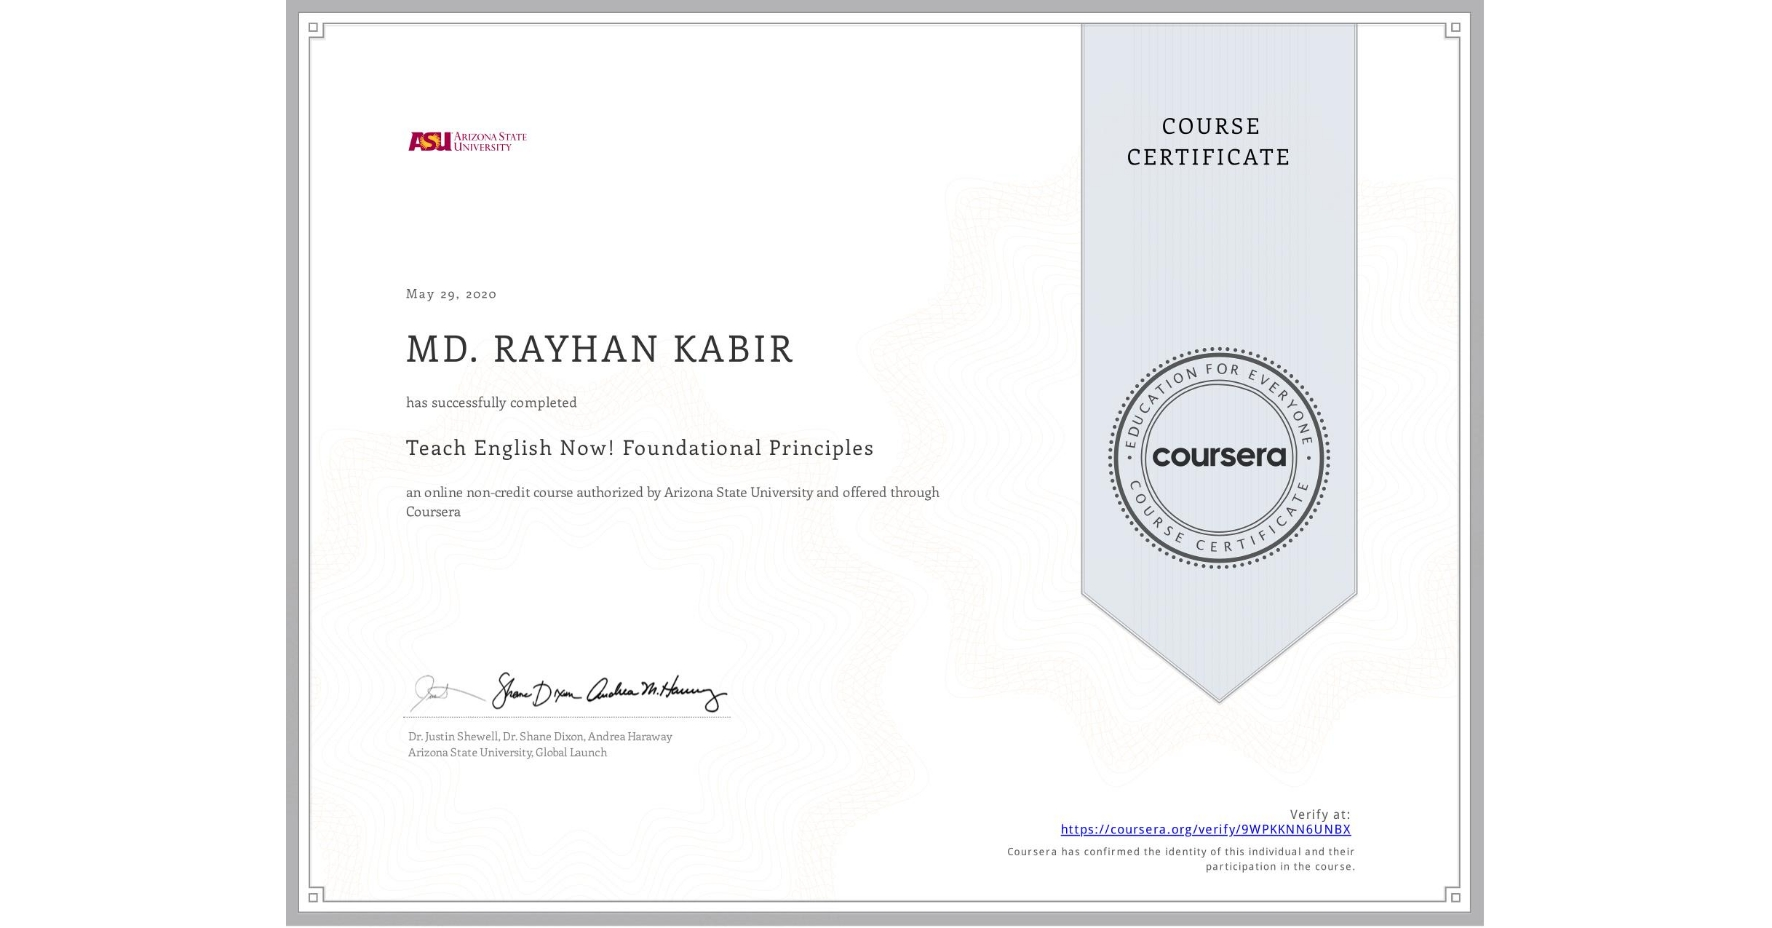 View certificate for MD. RAYHAN  KABIR, Teach English Now! Foundational Principles, an online non-credit course authorized by Arizona State University and offered through Coursera